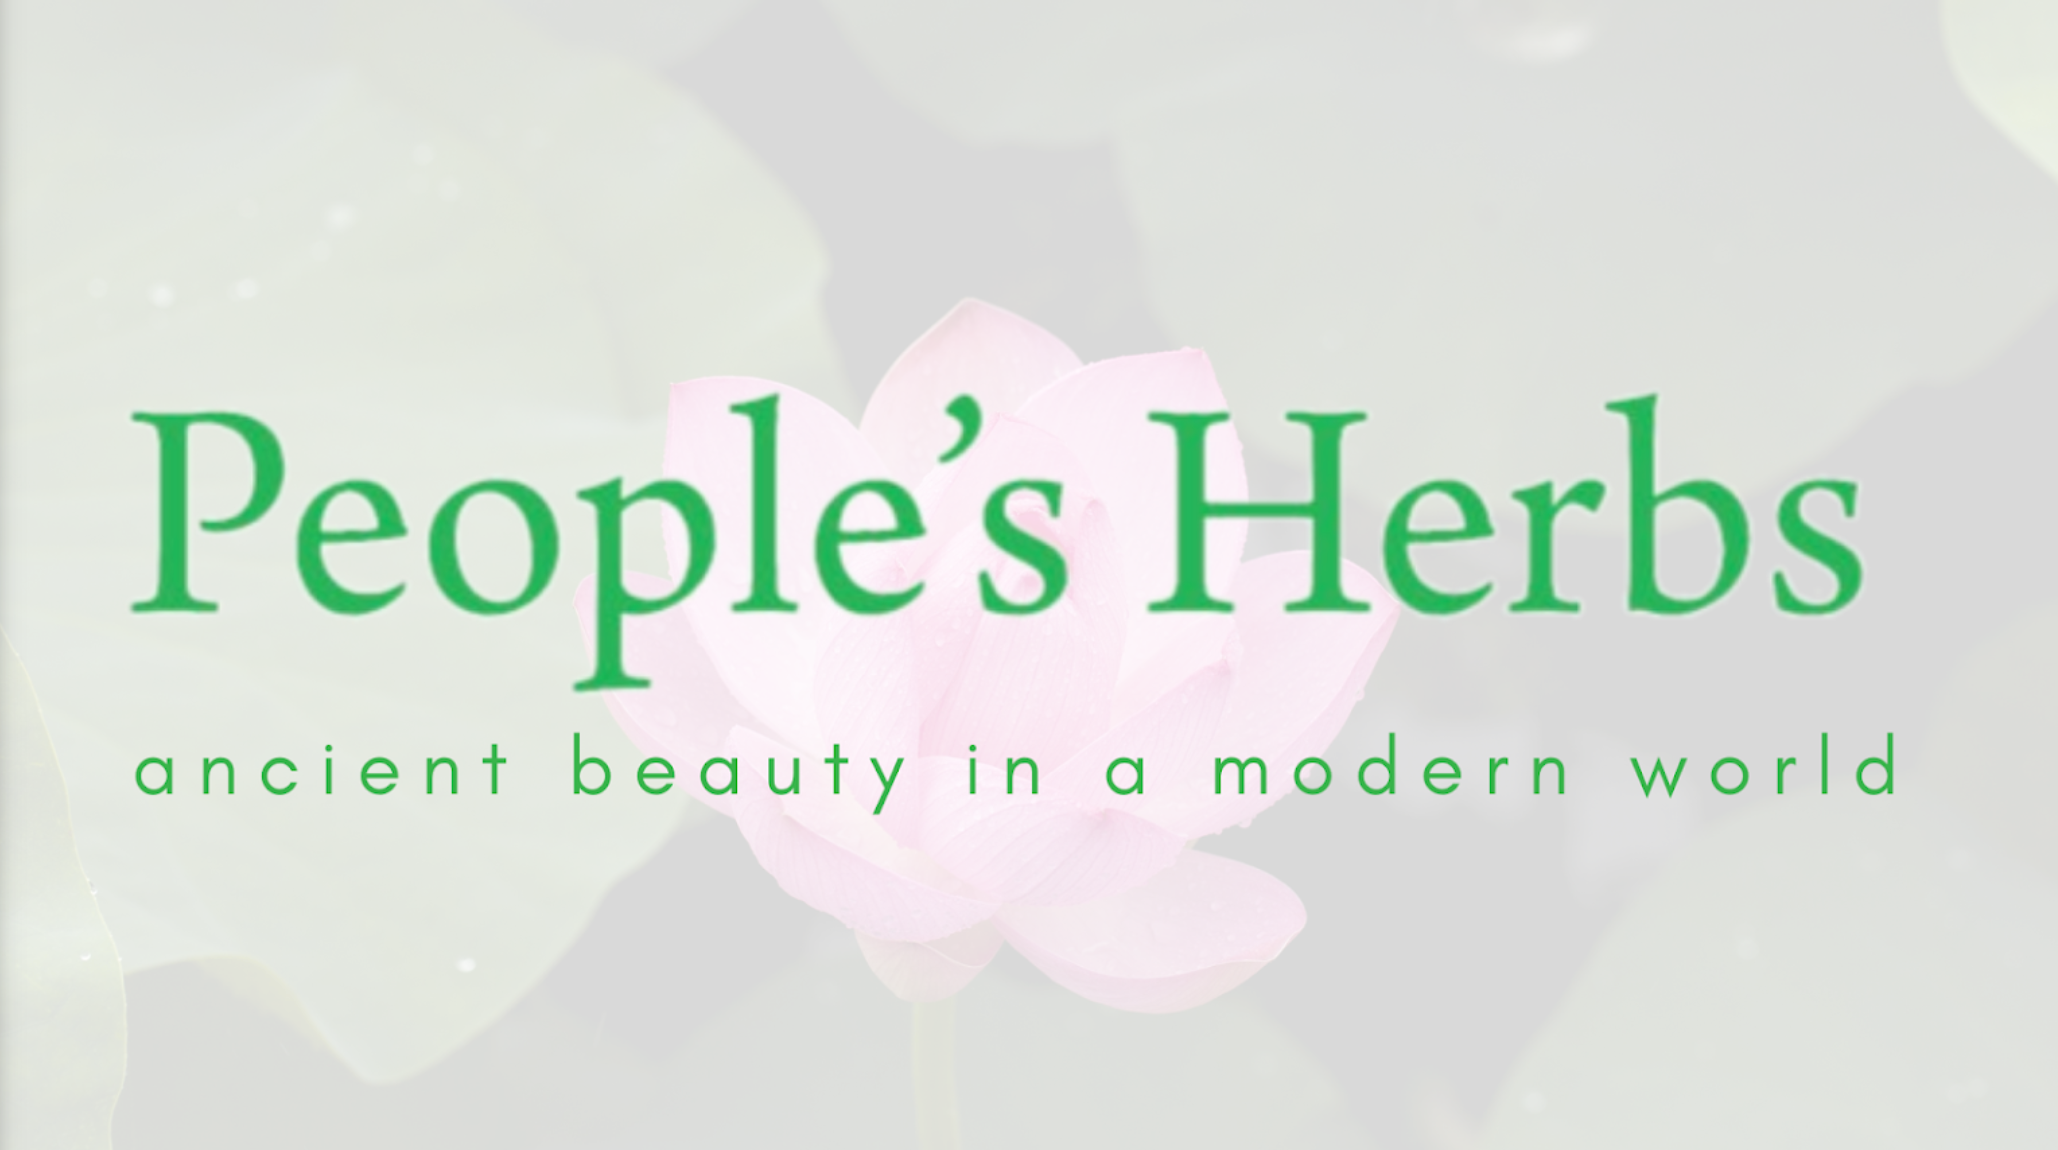 People's Herbs Expands Practitioner-Based Formulas to the Public